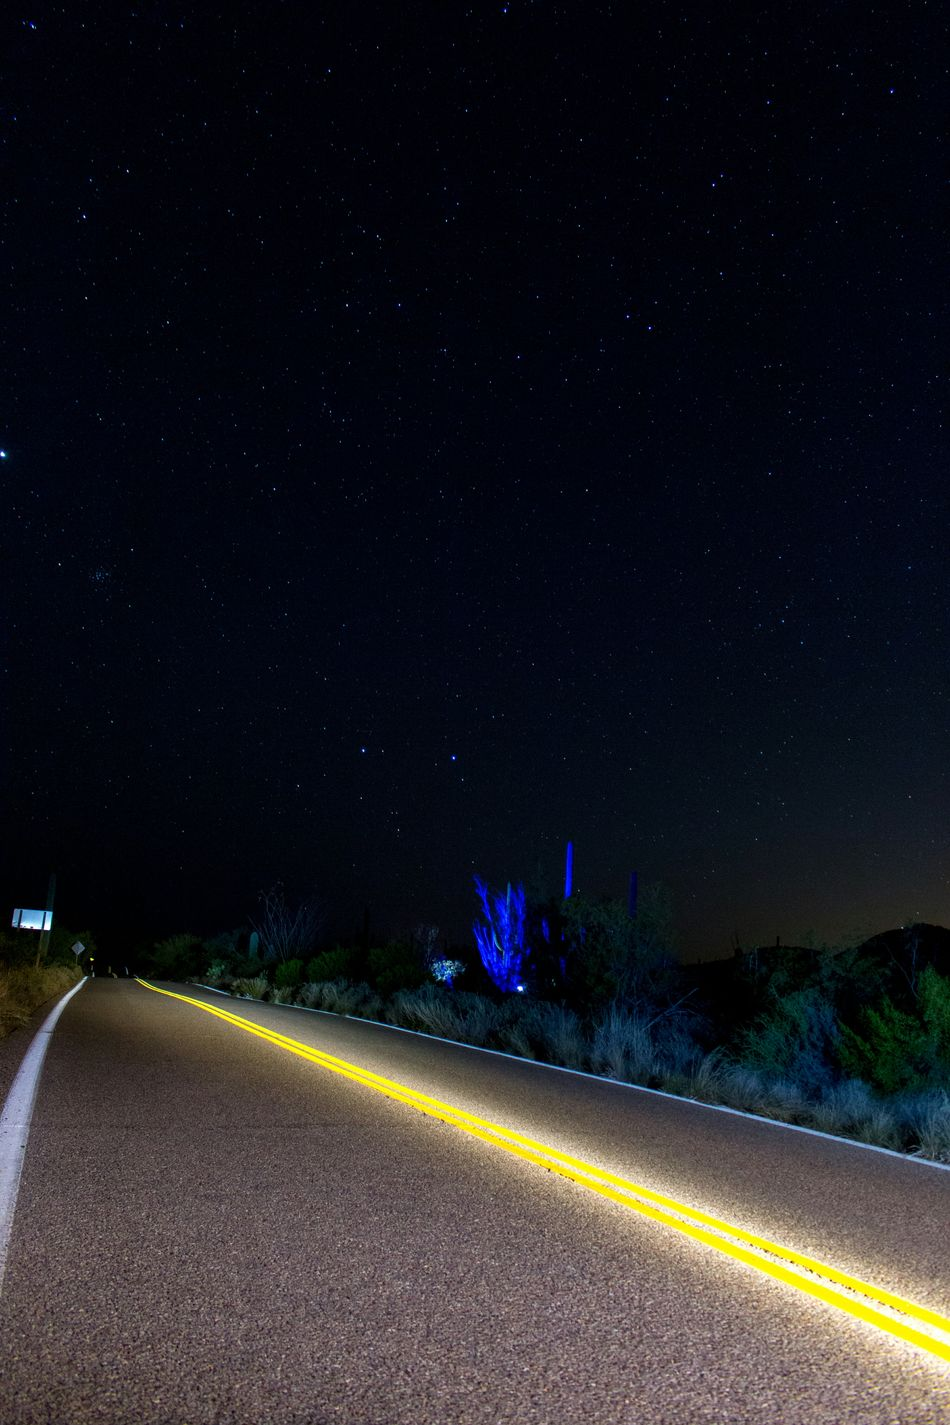 Langzeitbelichtung Photography Long Exposure Road Abstract Stars Landscape Nightphotography Night Escaping